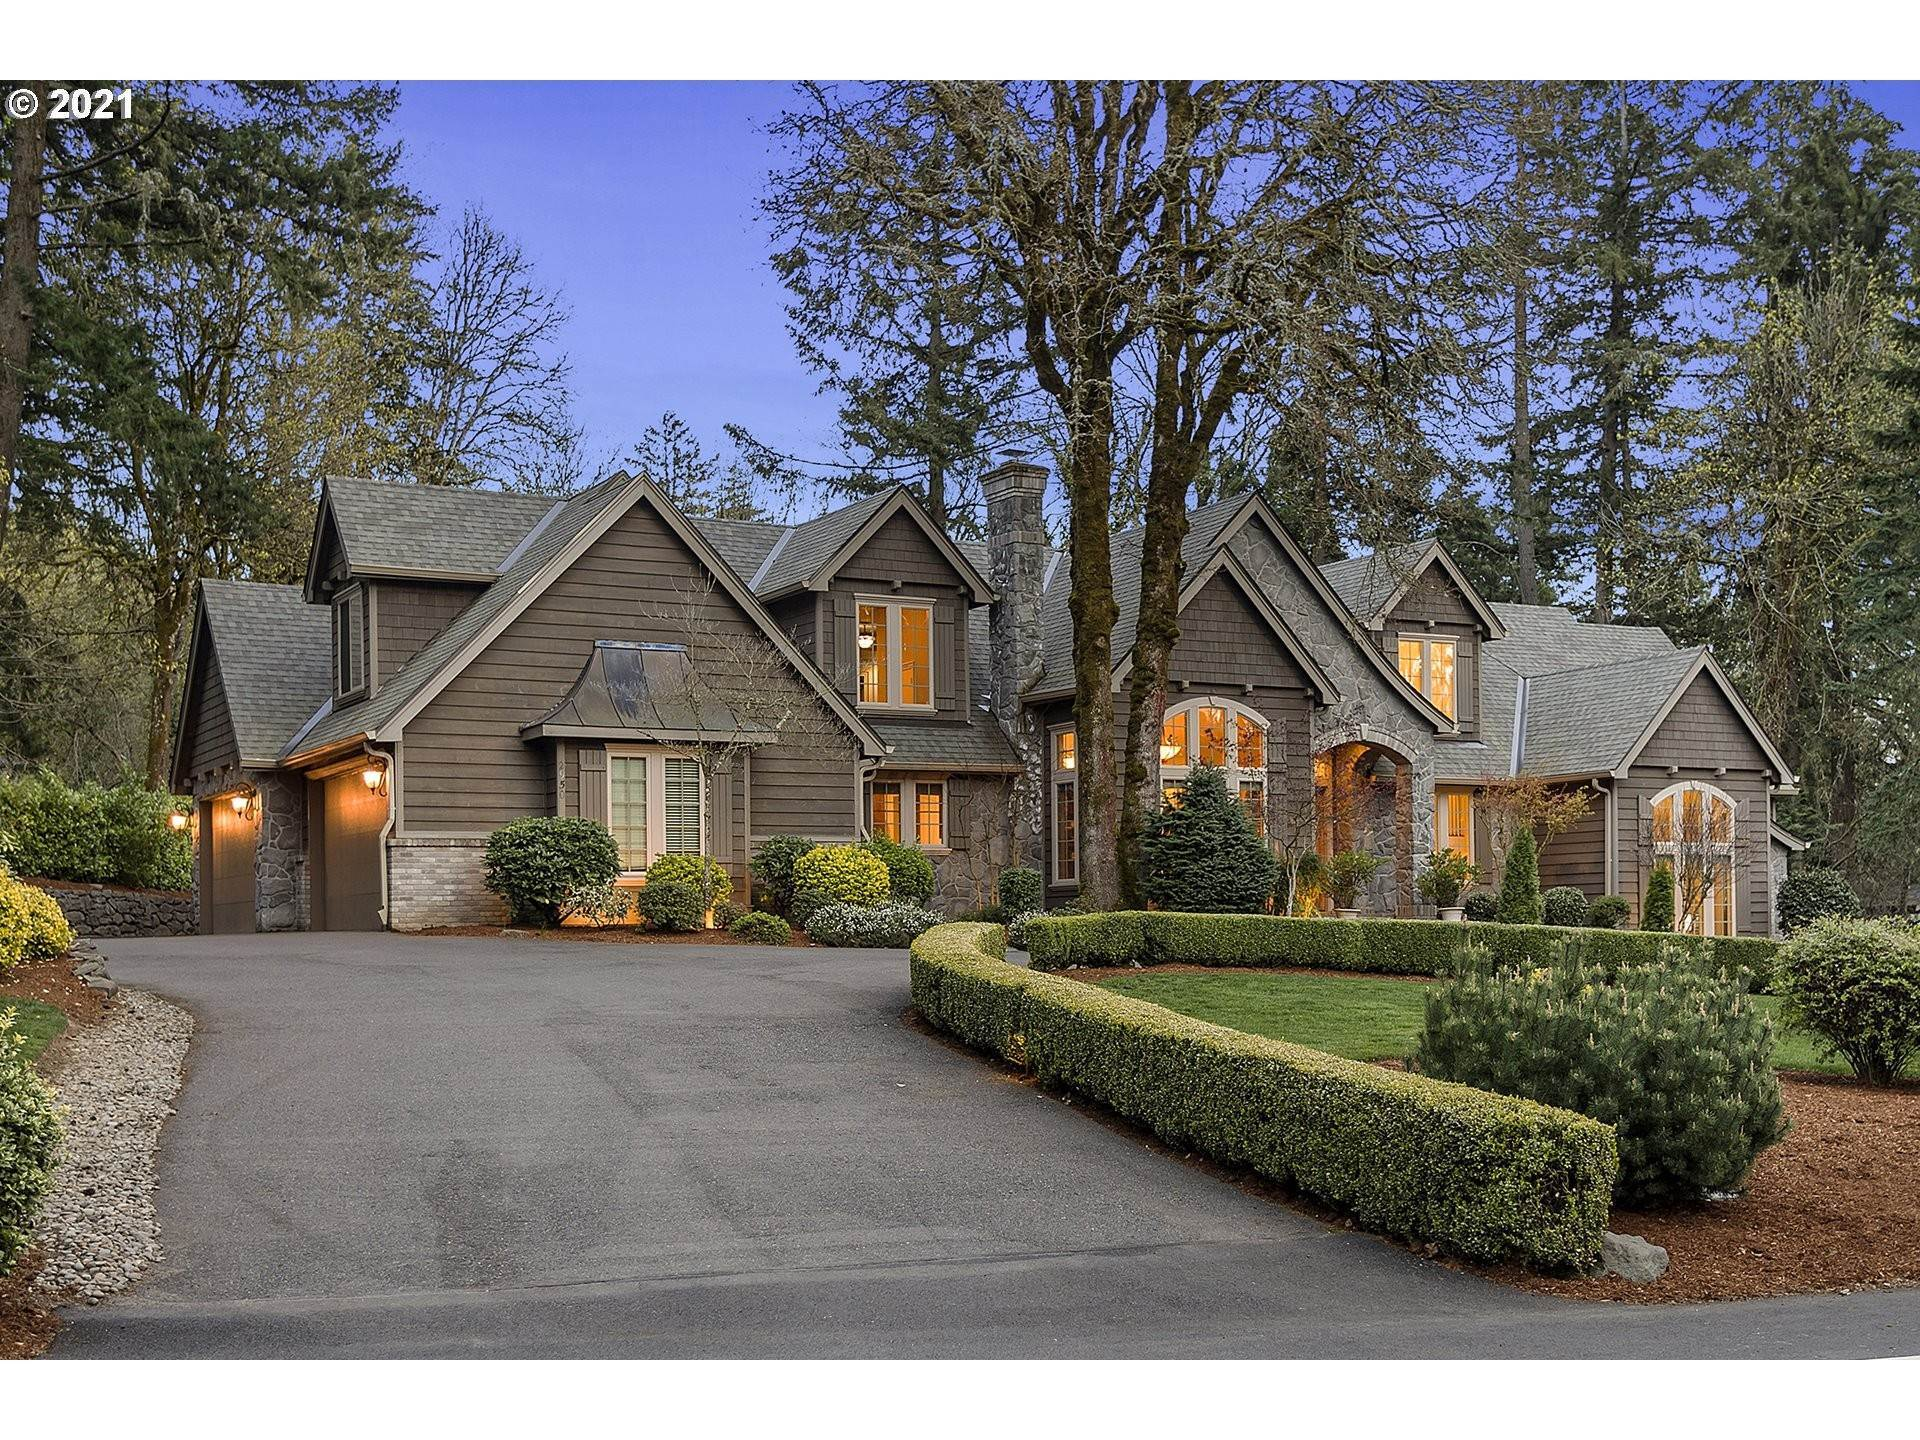 Single Family Home for Sale at 2950 WEMBLEY PARK RD Lake Oswego, Oregon,97034 United States